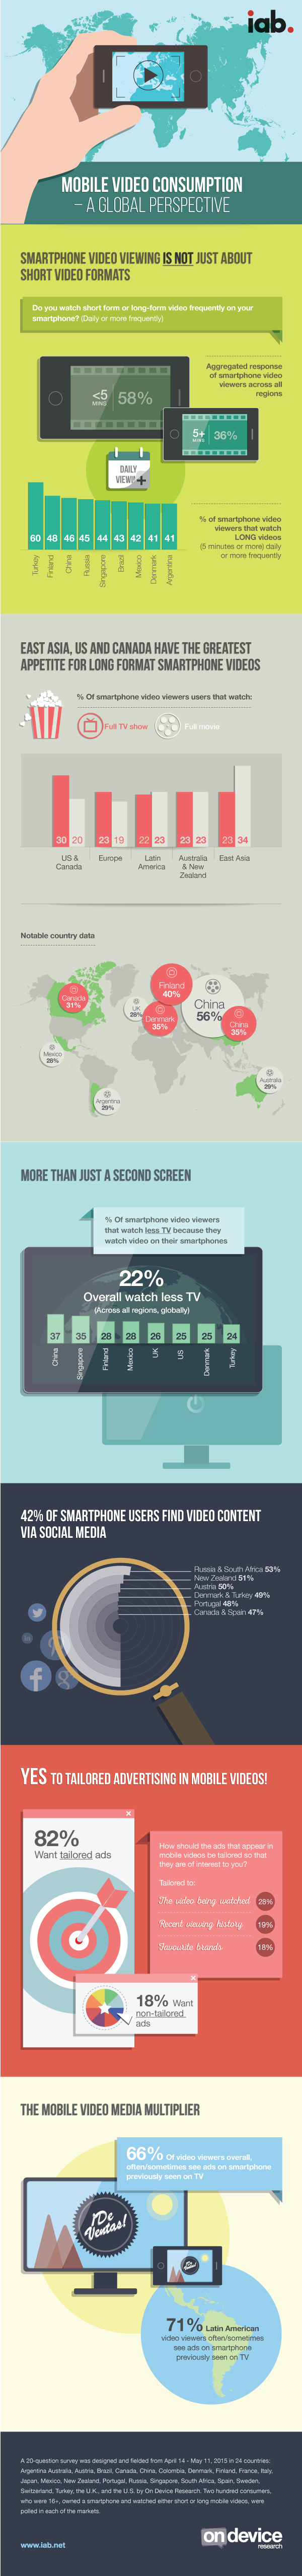 IAB-info-graphic-mobile-video-comsumption-AW